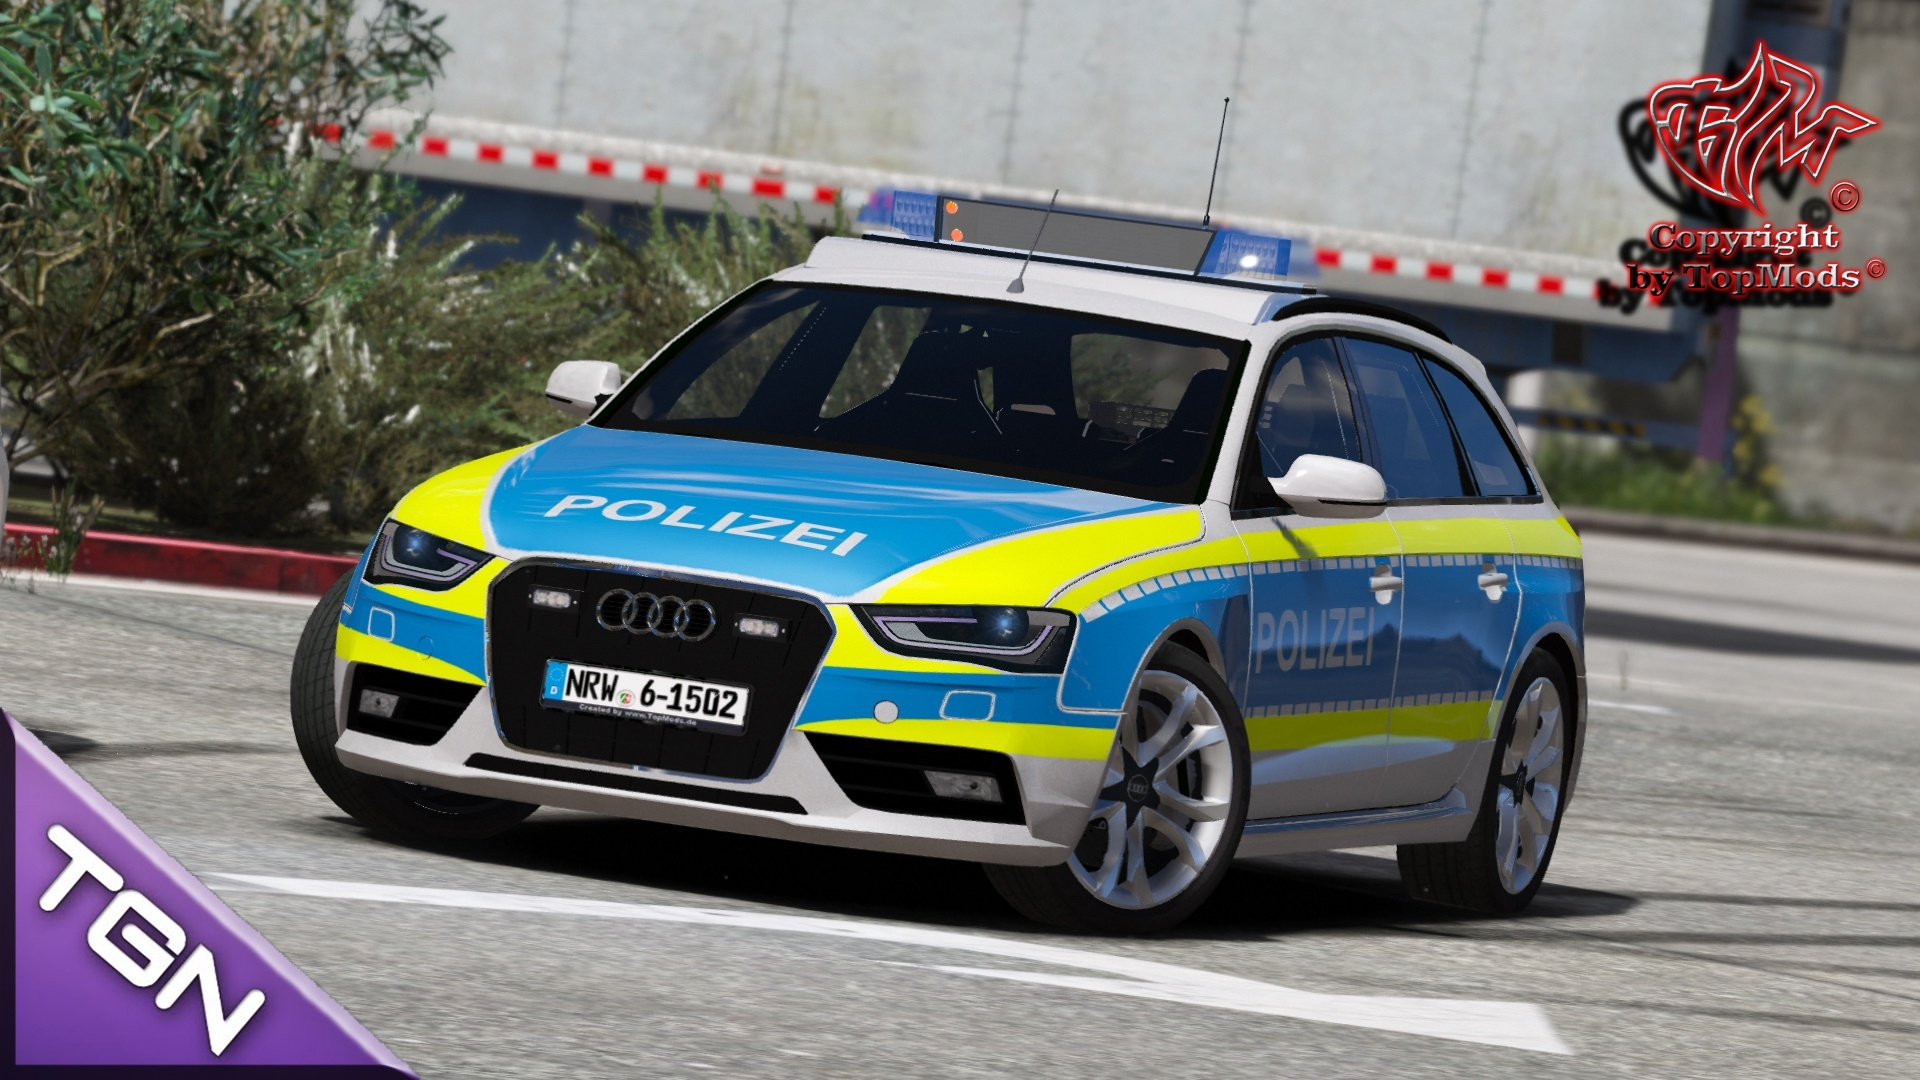 Audi A4 Avant Modified Elegant Audi A4 Avant Autobahnpolizei Nrw Gta5 Mods Com-2460 Of Fresh Audi A4 Avant Modified